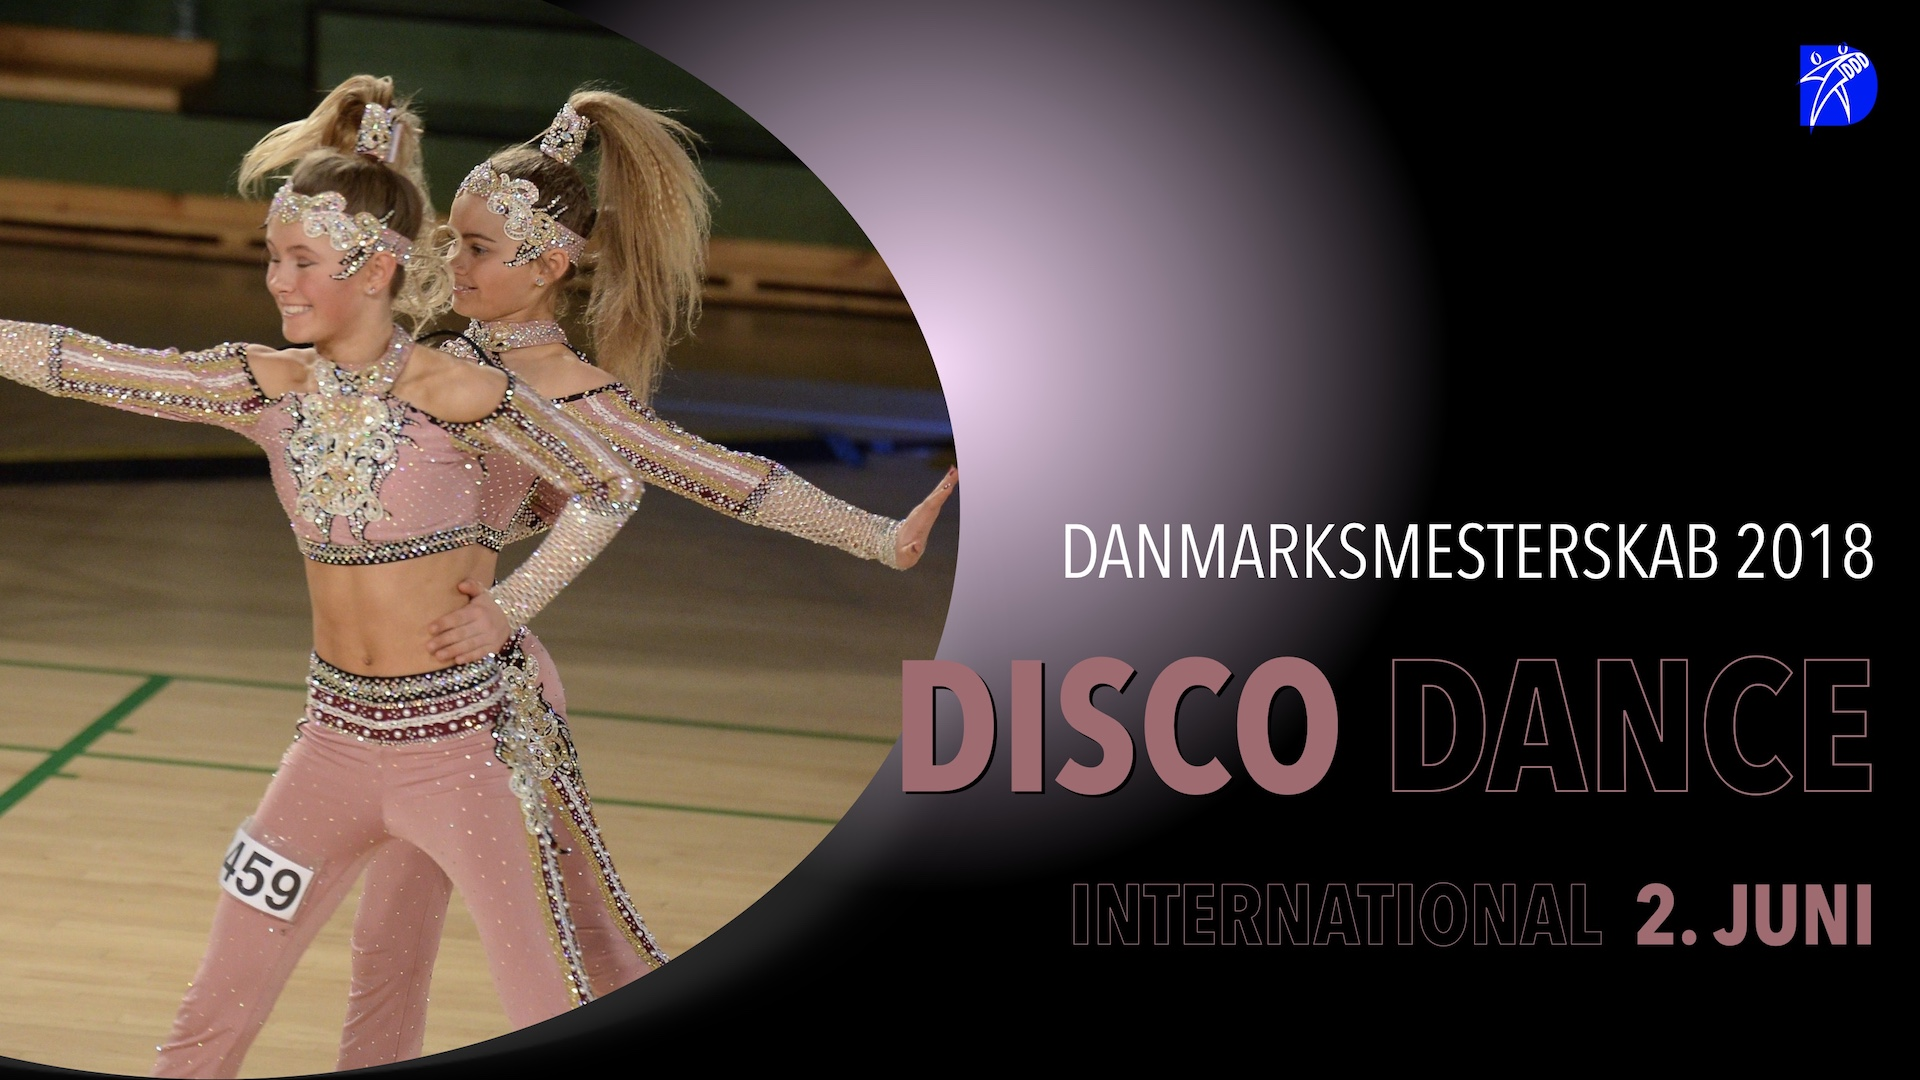 DM Disco international2018 2juni